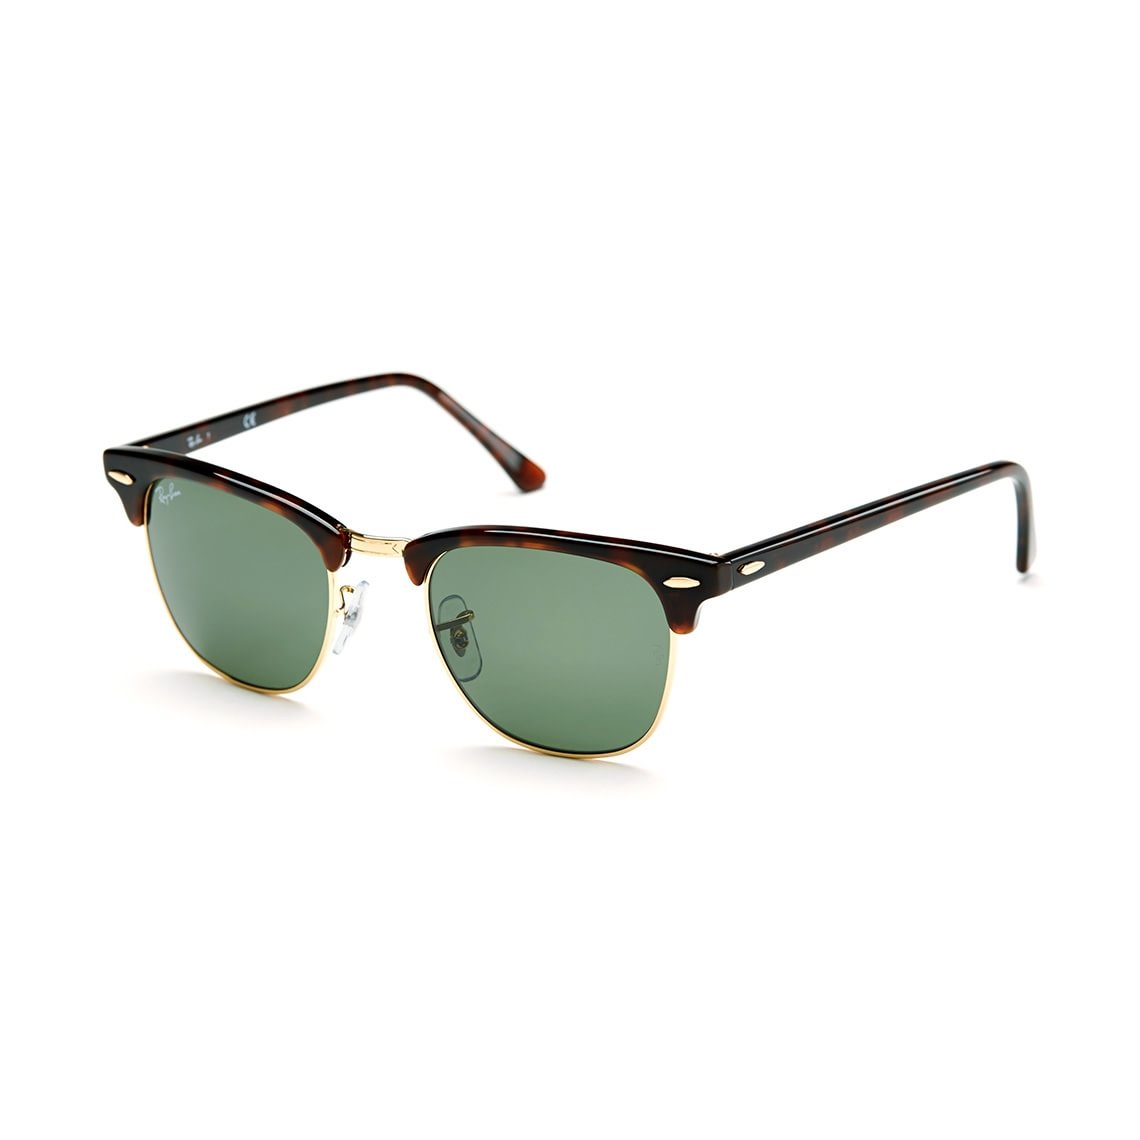 w0366 ray ban ptkf  ray ban clubmaster rb3016 w0366